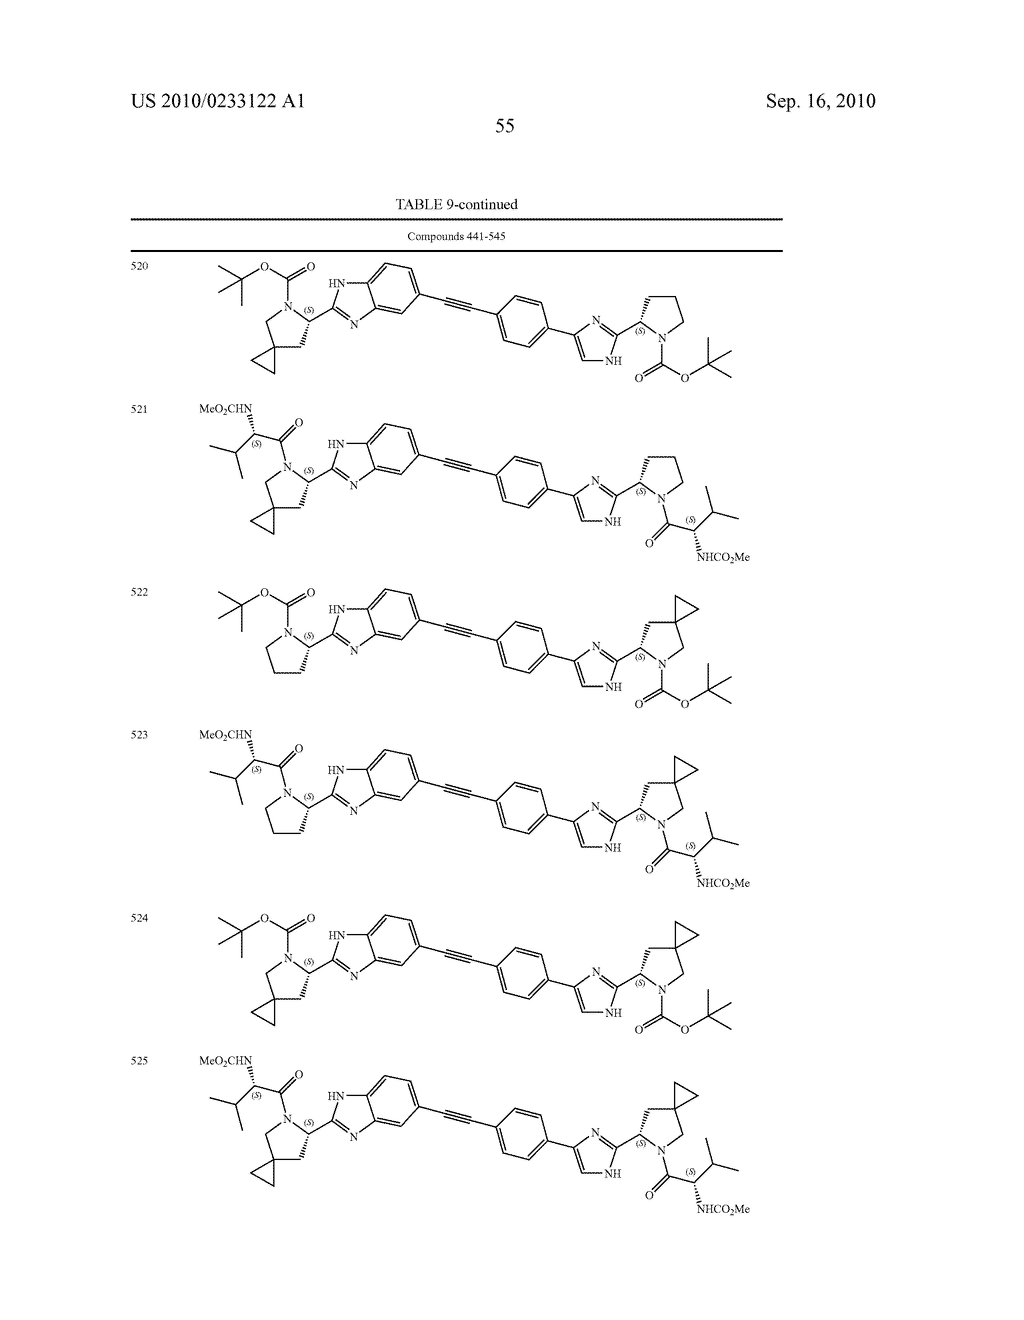 NOVEL BENZIMIDAZOLE DERIVATIVES - diagram, schematic, and image 56